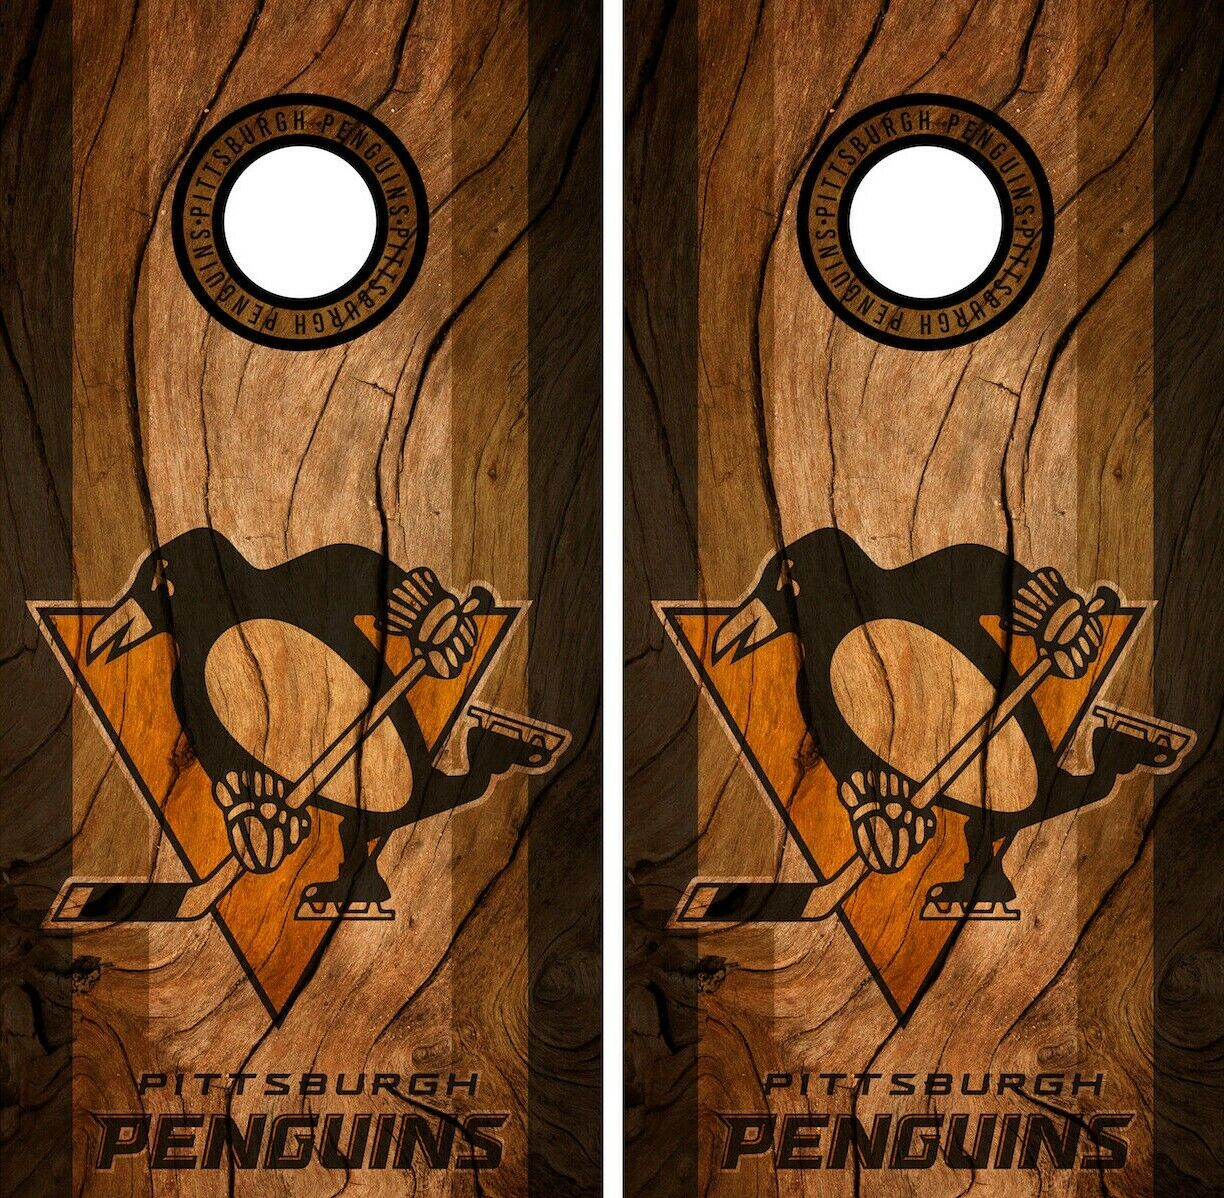 Pittsburgh Penguins Cornhole  Wrap NHL Decal Vinyl Gameboard Skin Set YD111  counter genuine